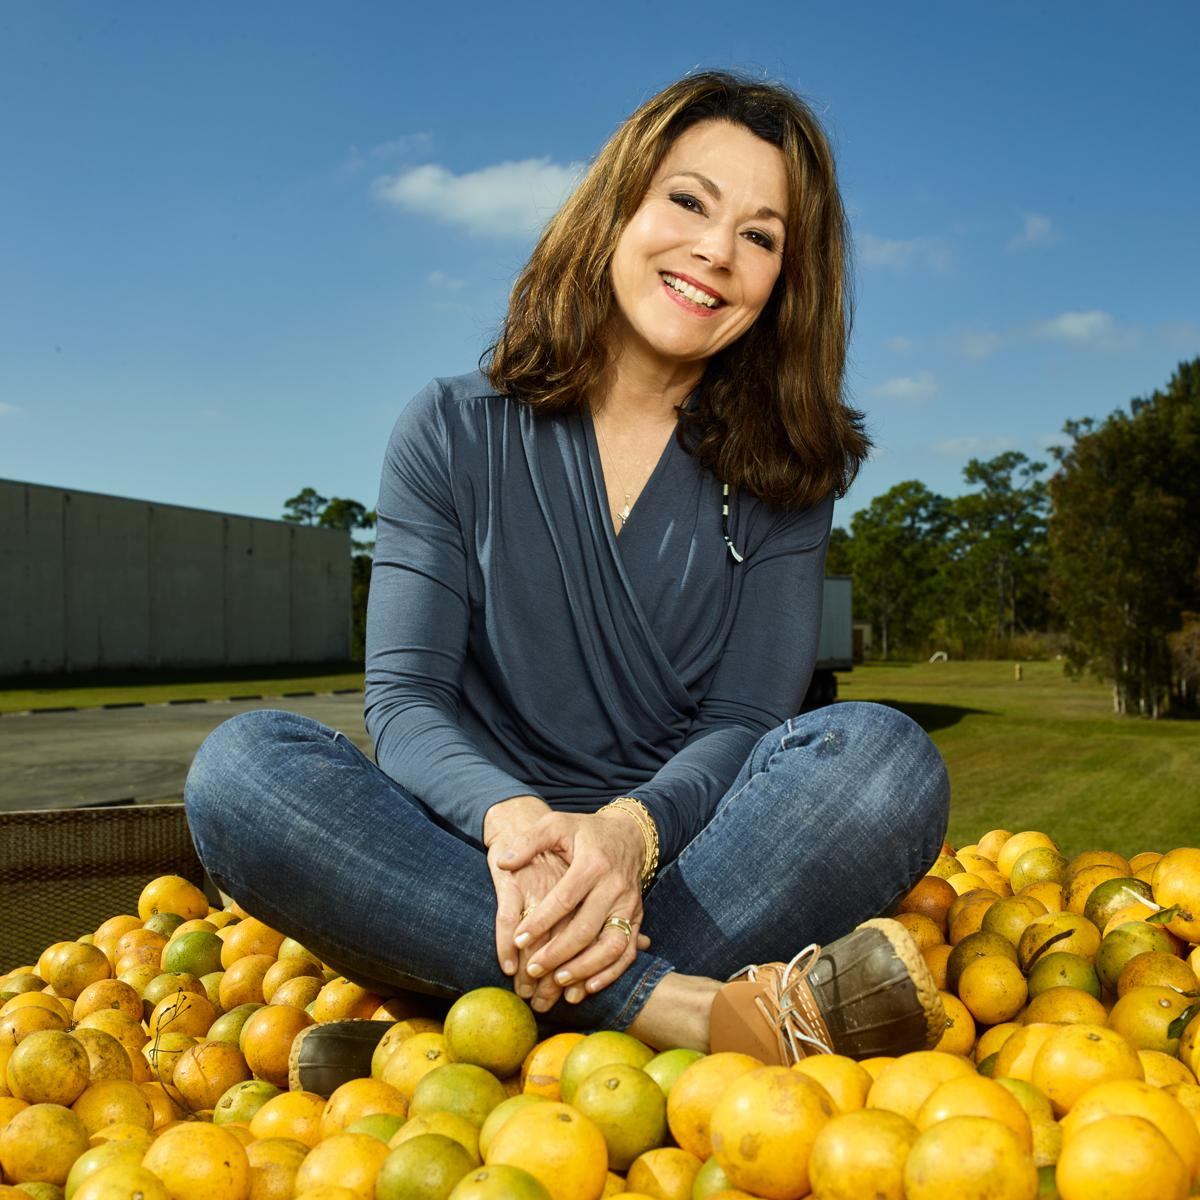 Fresh Fanatic: Private Equity Spoiled Natalie's Juice Company. Then The Founder Rebottled It Into A $140M Success